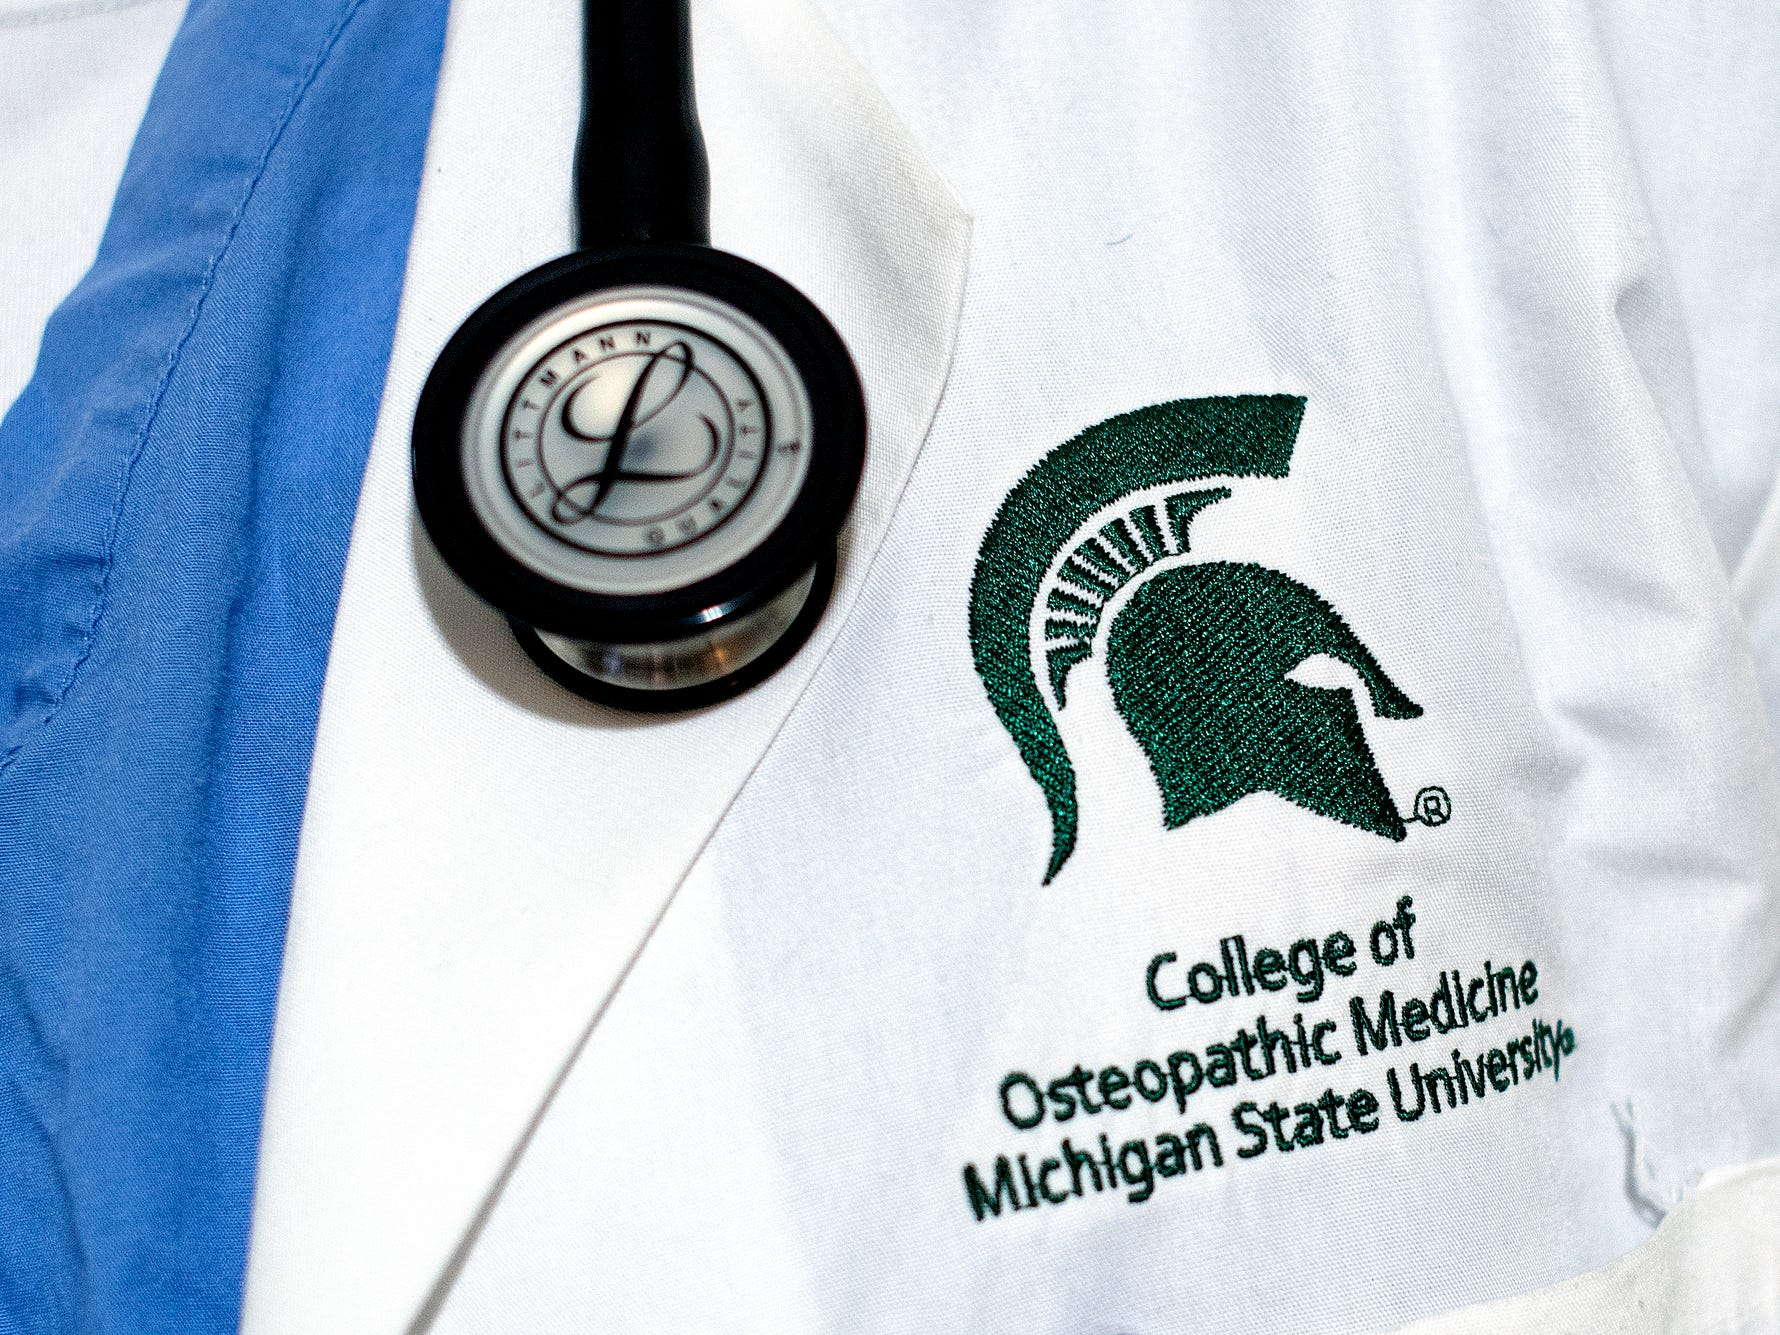 Robert Ray Jr., photographed on Friday, April 19, 2019, will be an emergency medicine resident in Allentown, Pennsylvania, after graduating from the Michigan State University College of Osteopathic Medicine in May.